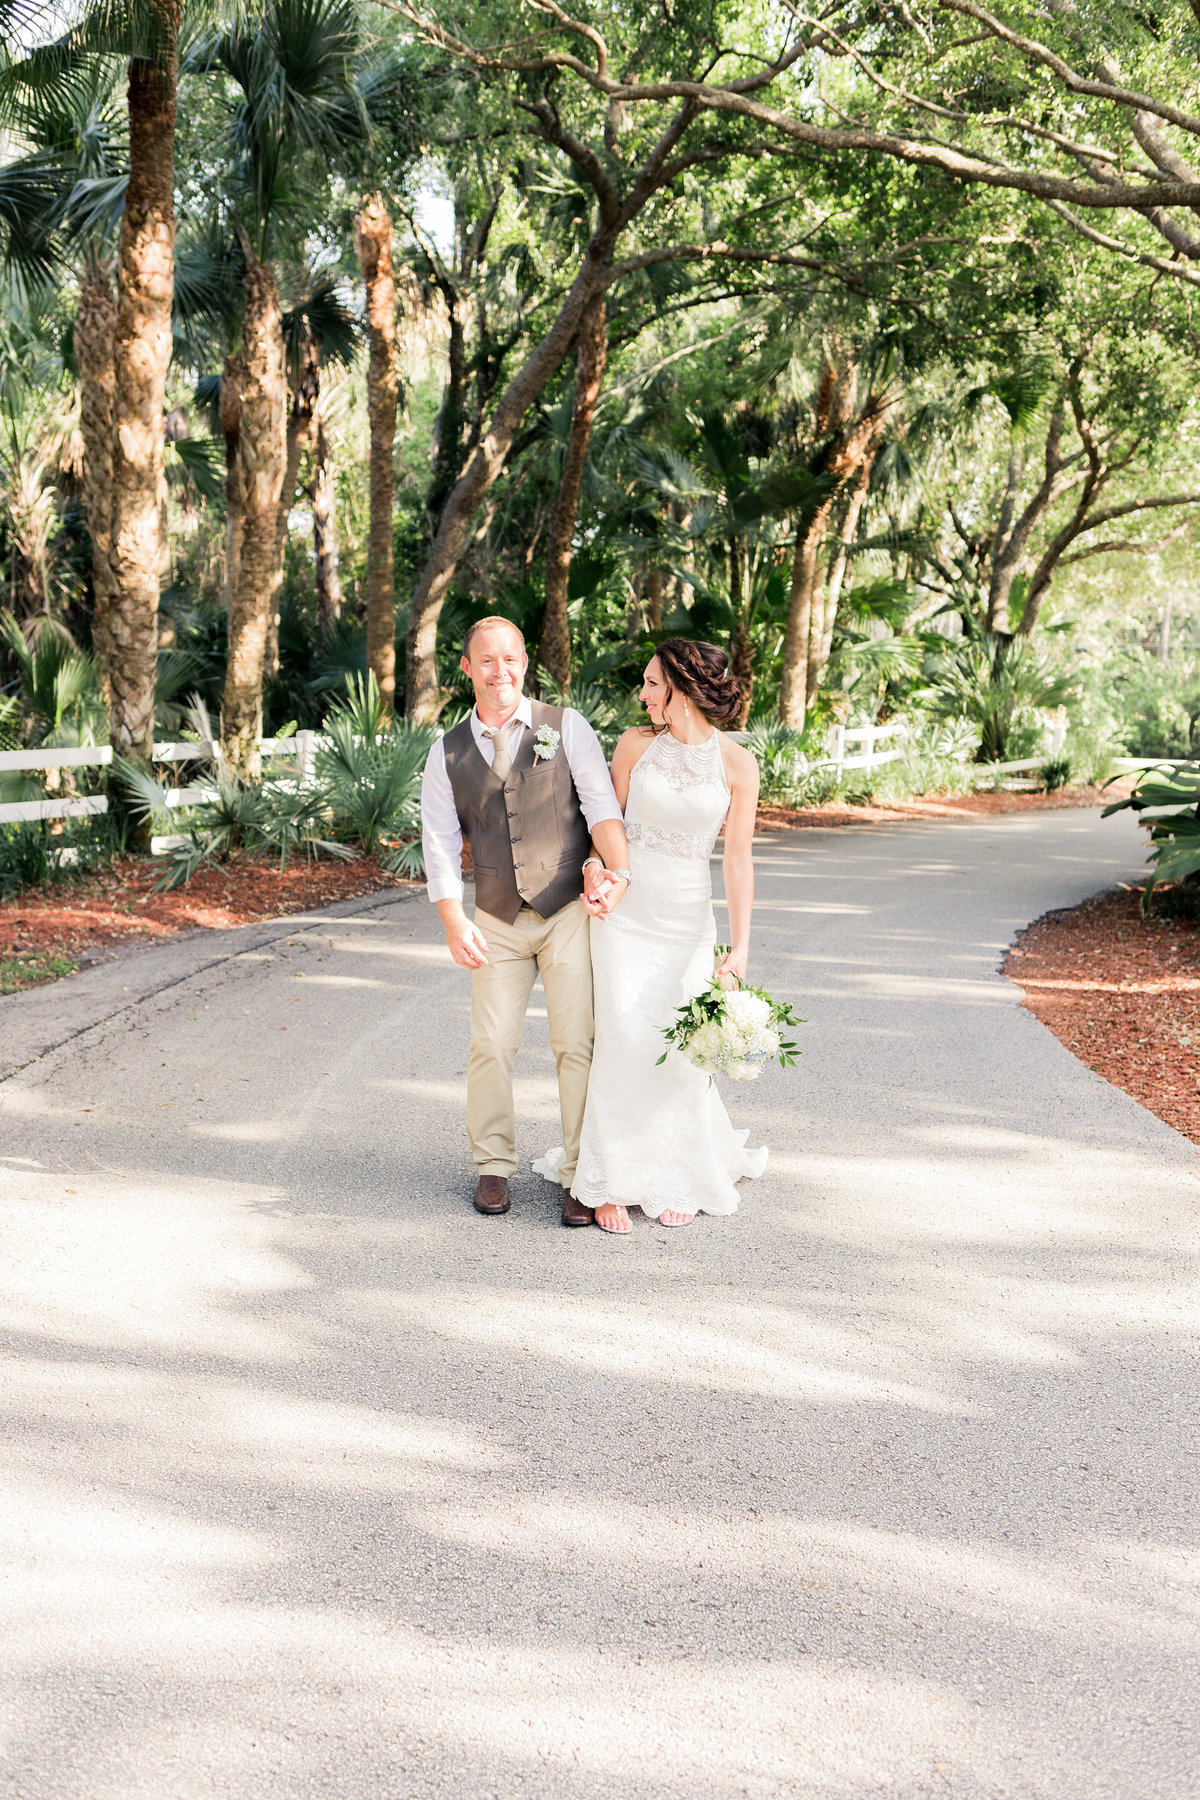 kimberly-hoyle-photography-kelly-david-grant-florida-wedding-71